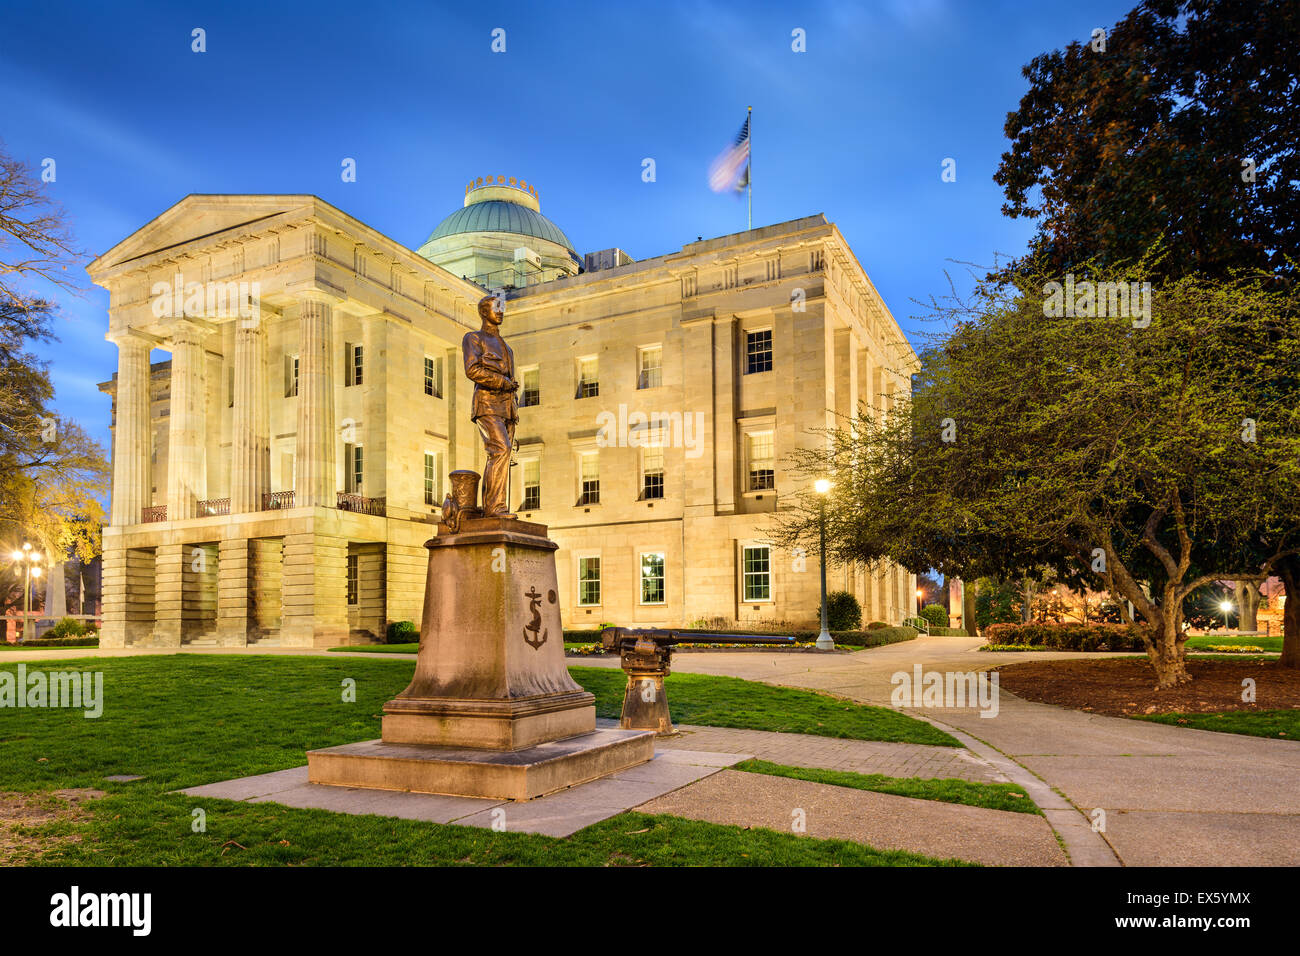 Raleigh, Carolina del Norte, EE.UU. Capitolio Estatal. Imagen De Stock